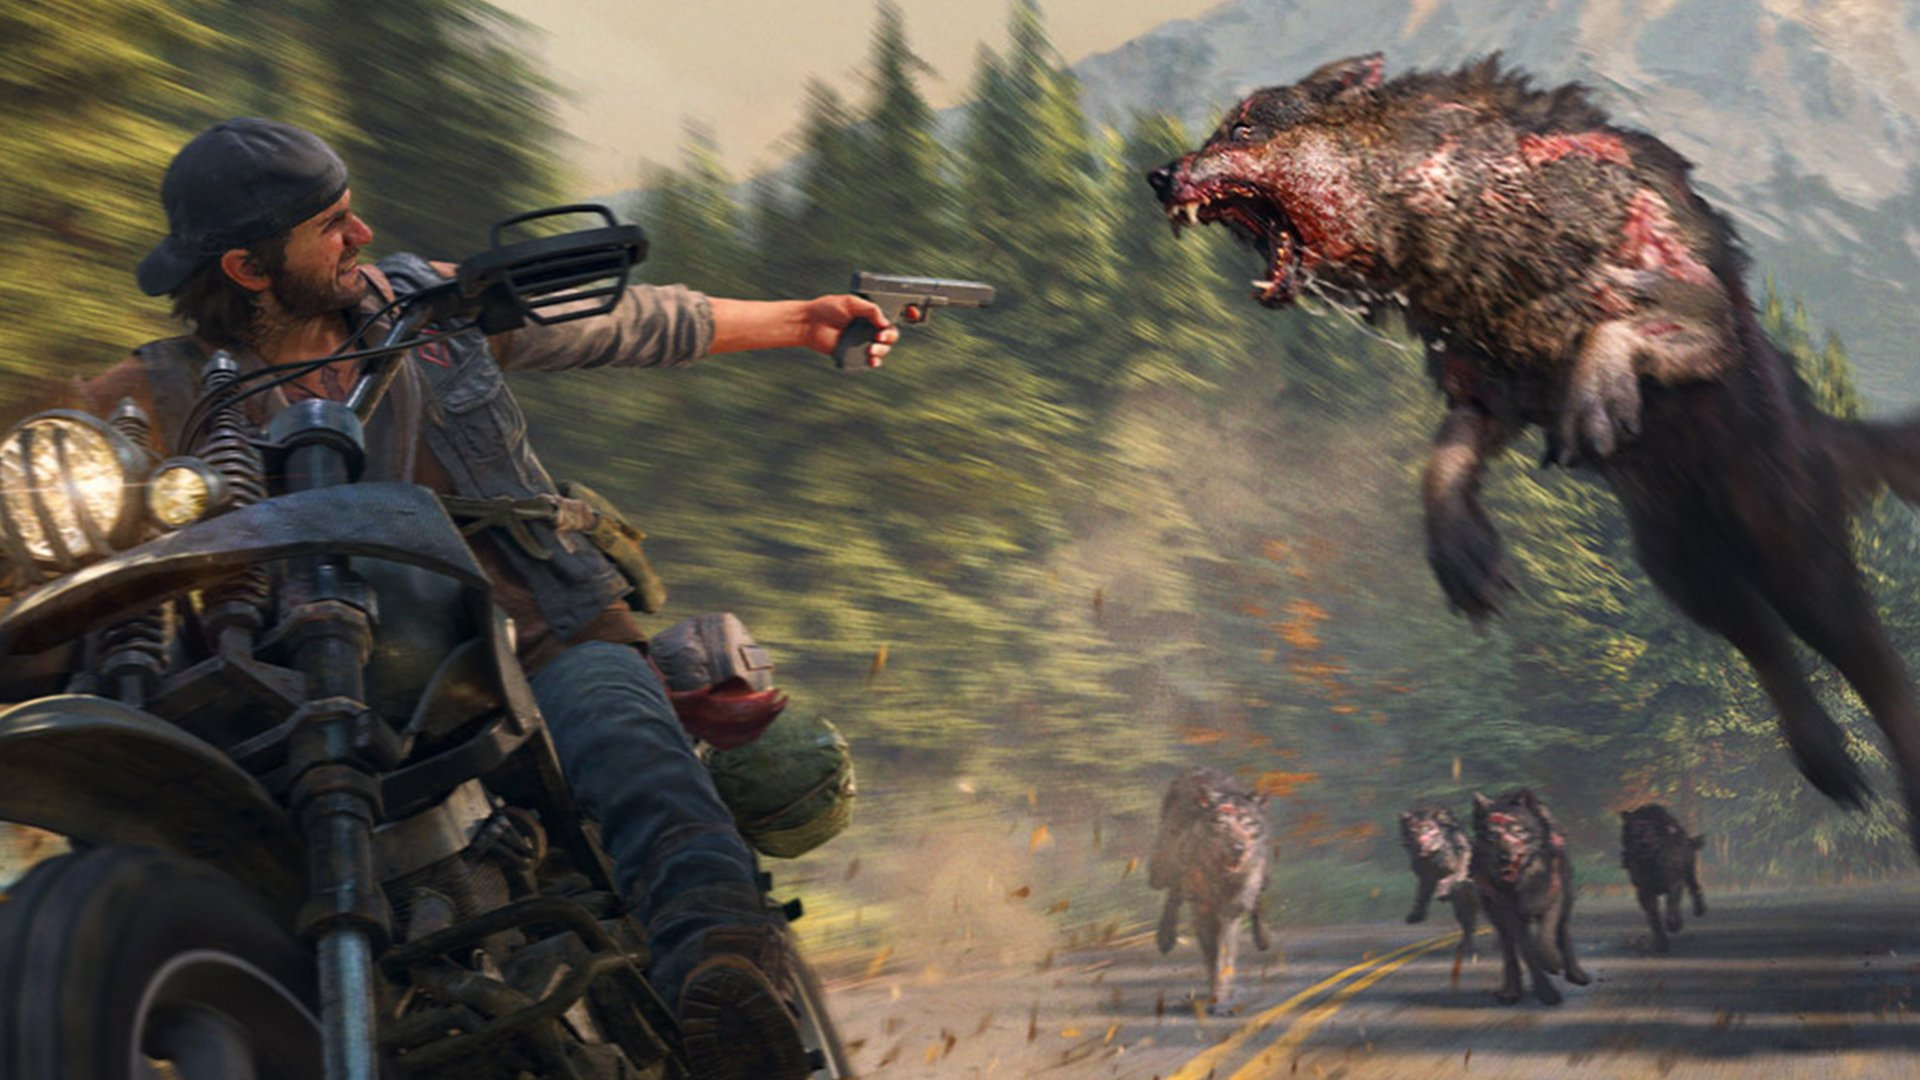 En la próxima actualización, Days Gone contará con un modo New Game Plus